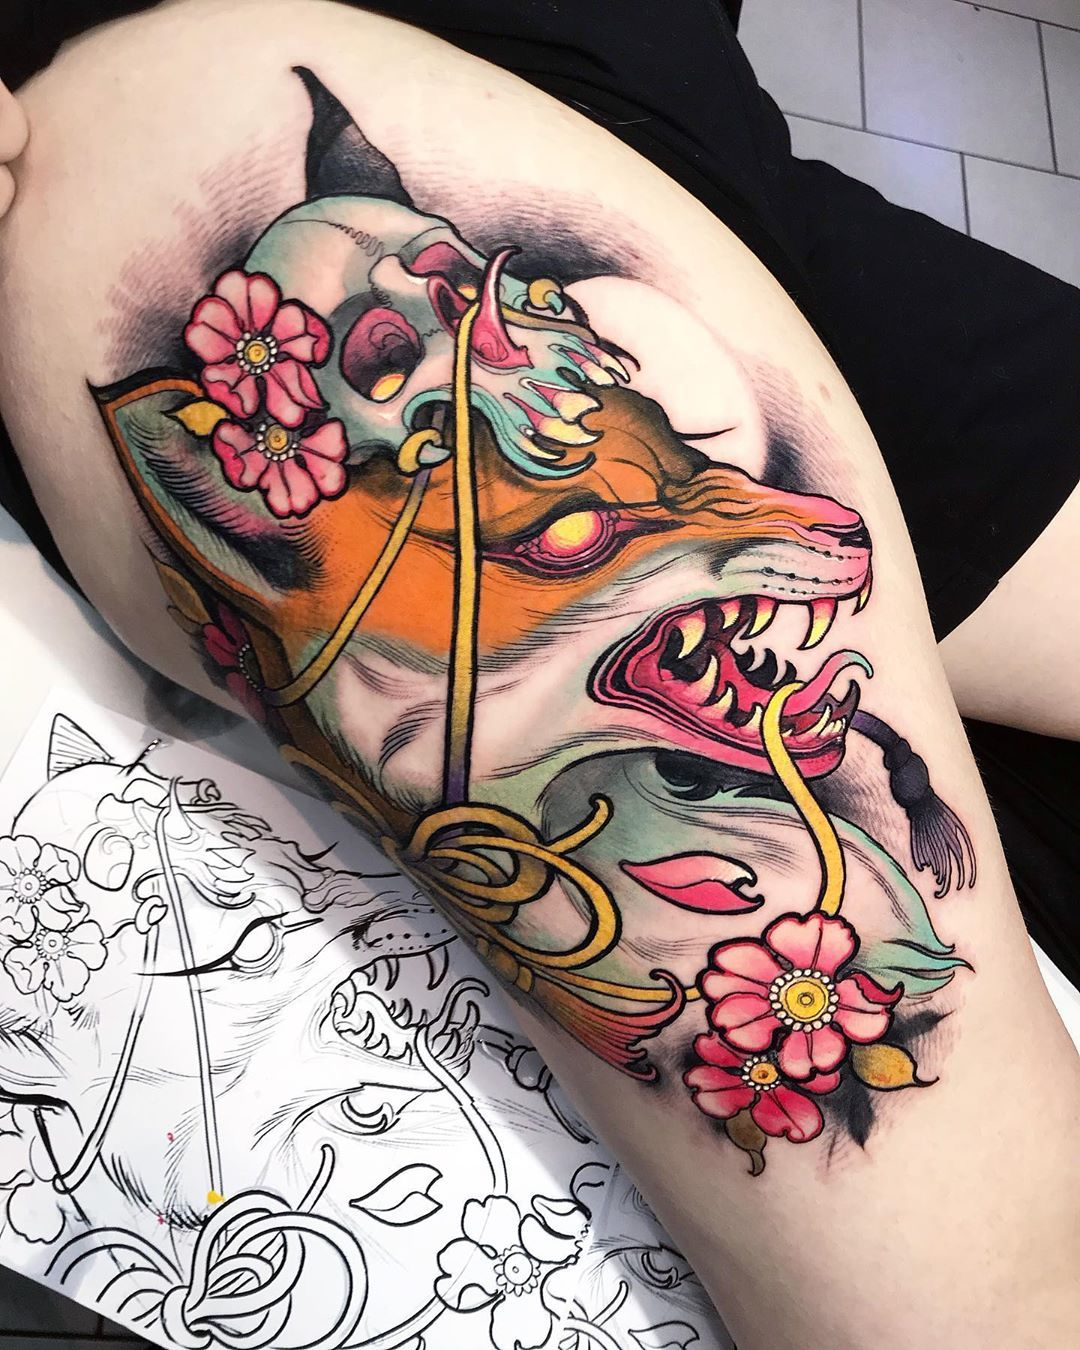 Tattoo Kitsune Foxtattoo Neo Traditional Tattoo Traditional Tattoo Best 3d Tattoos